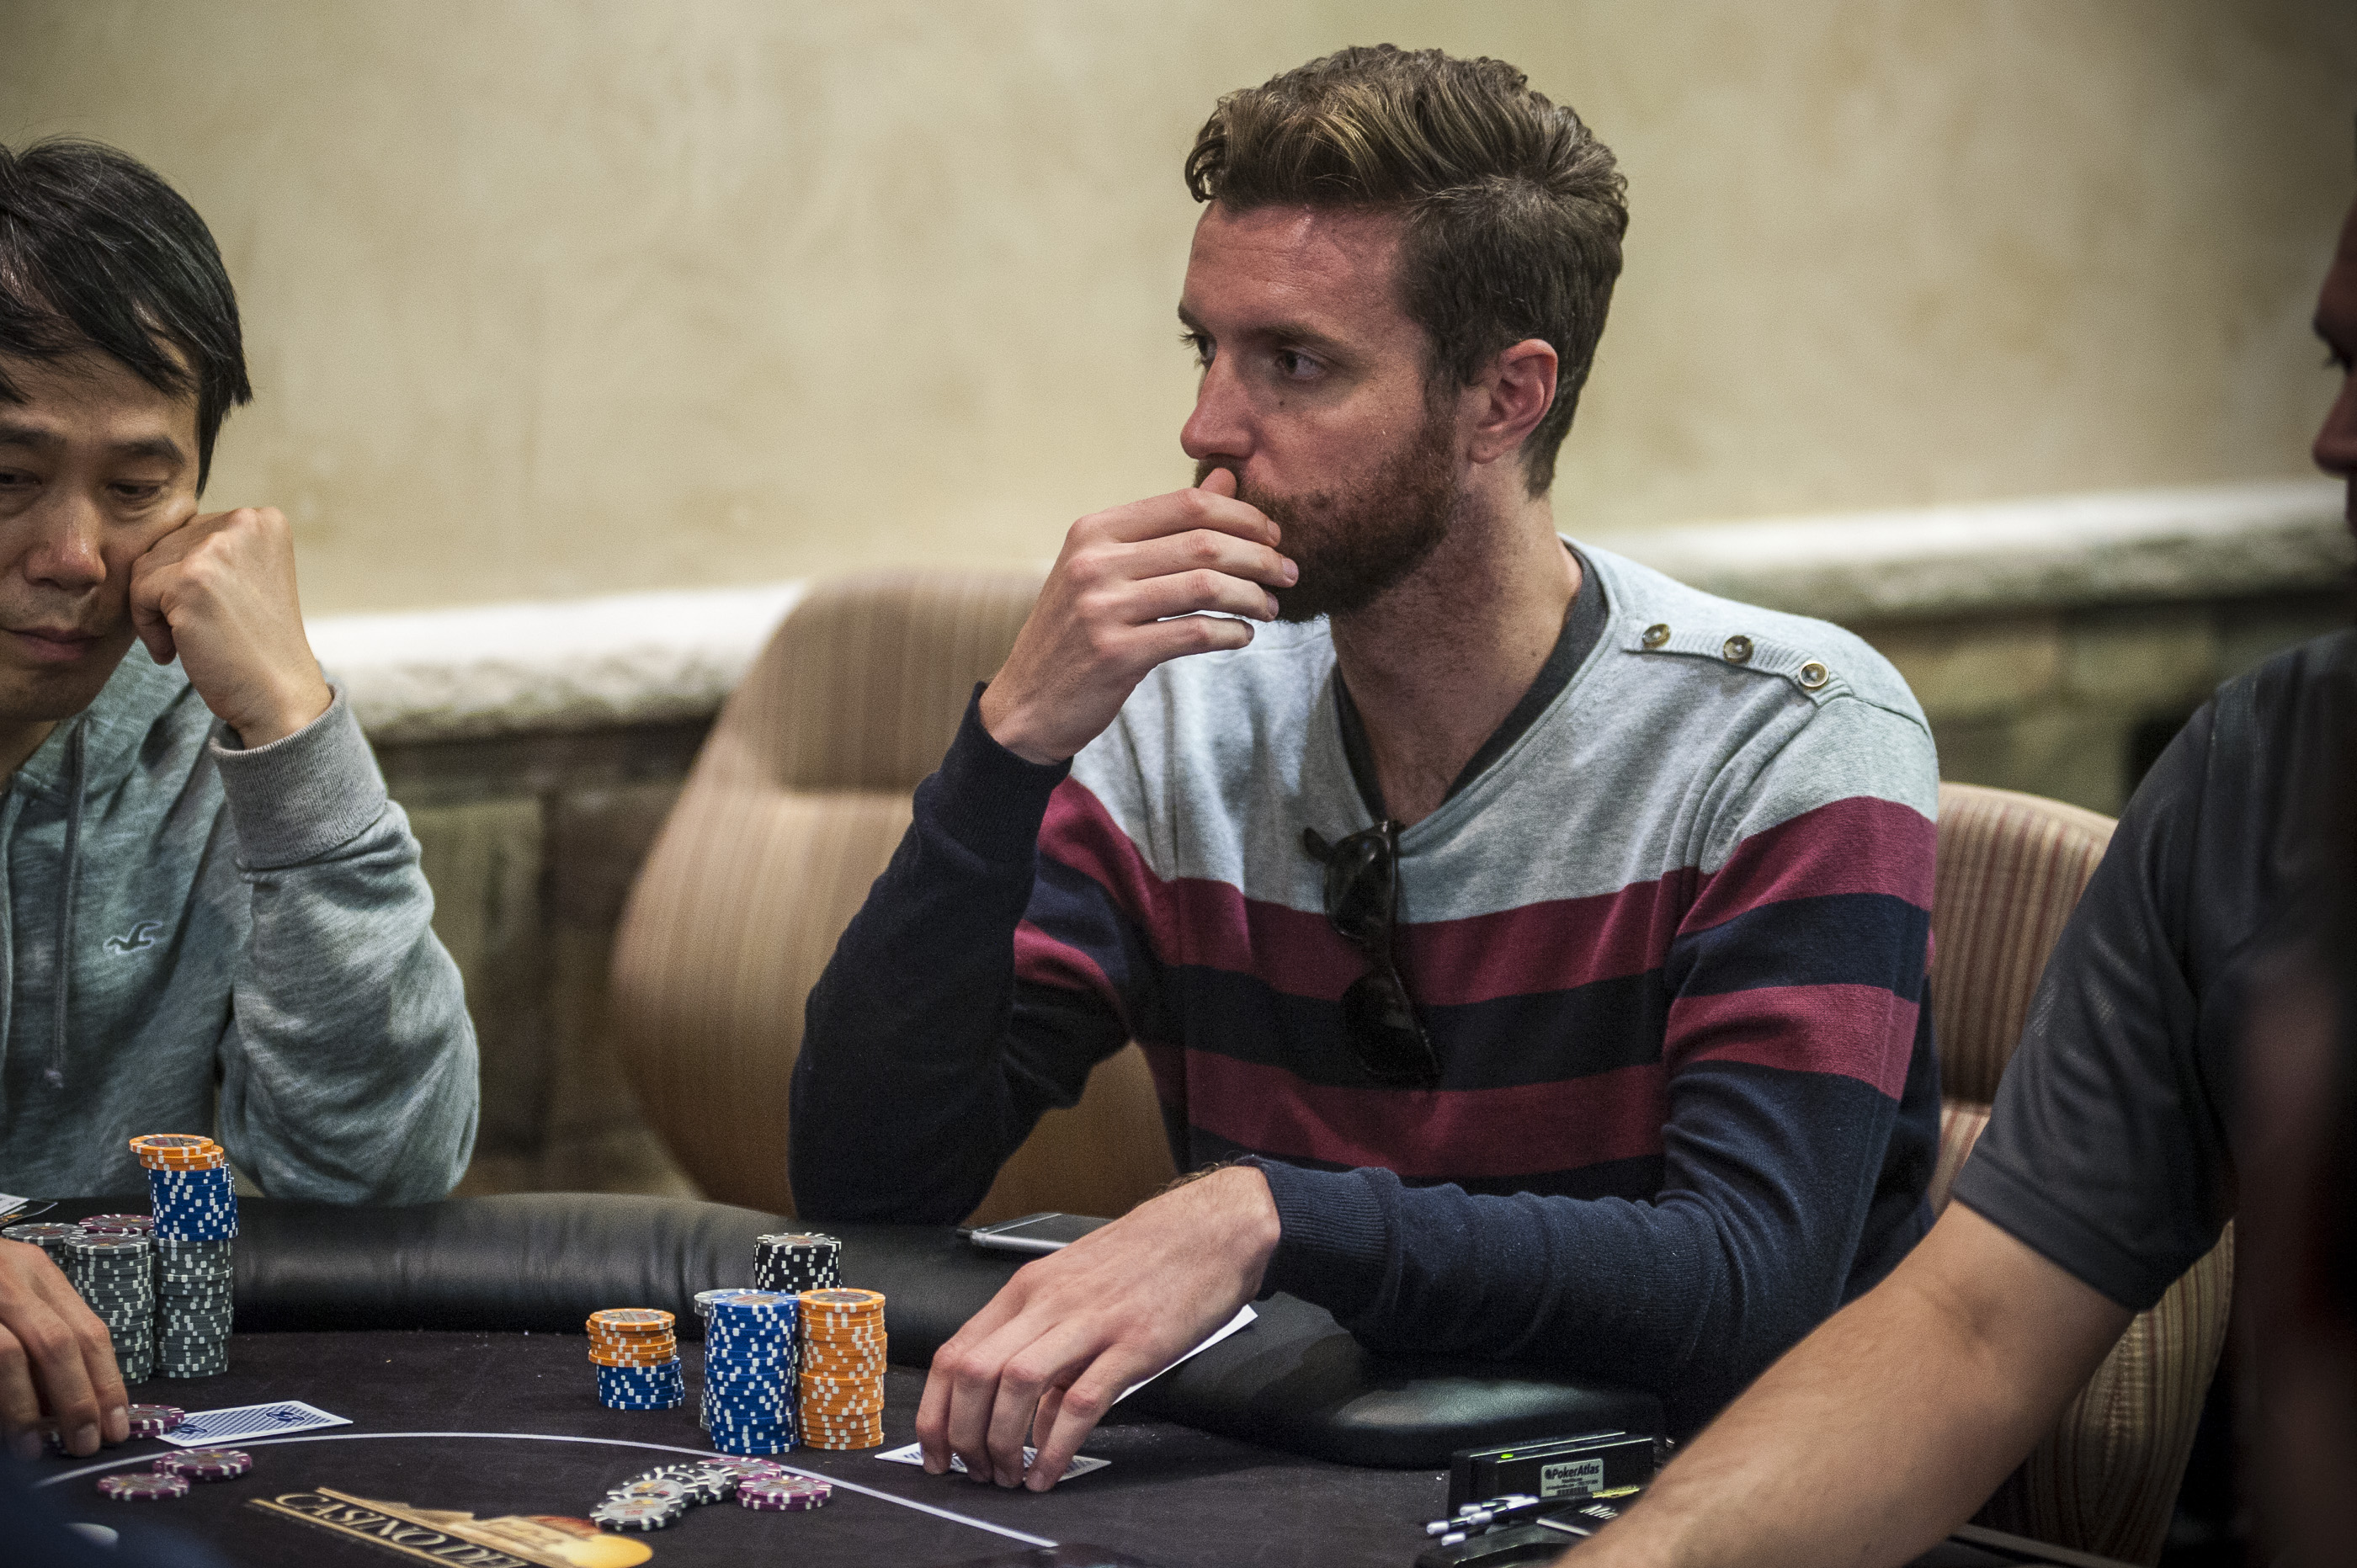 Day 1B Ends with 32 Players – Alex Scattareggia Leads with